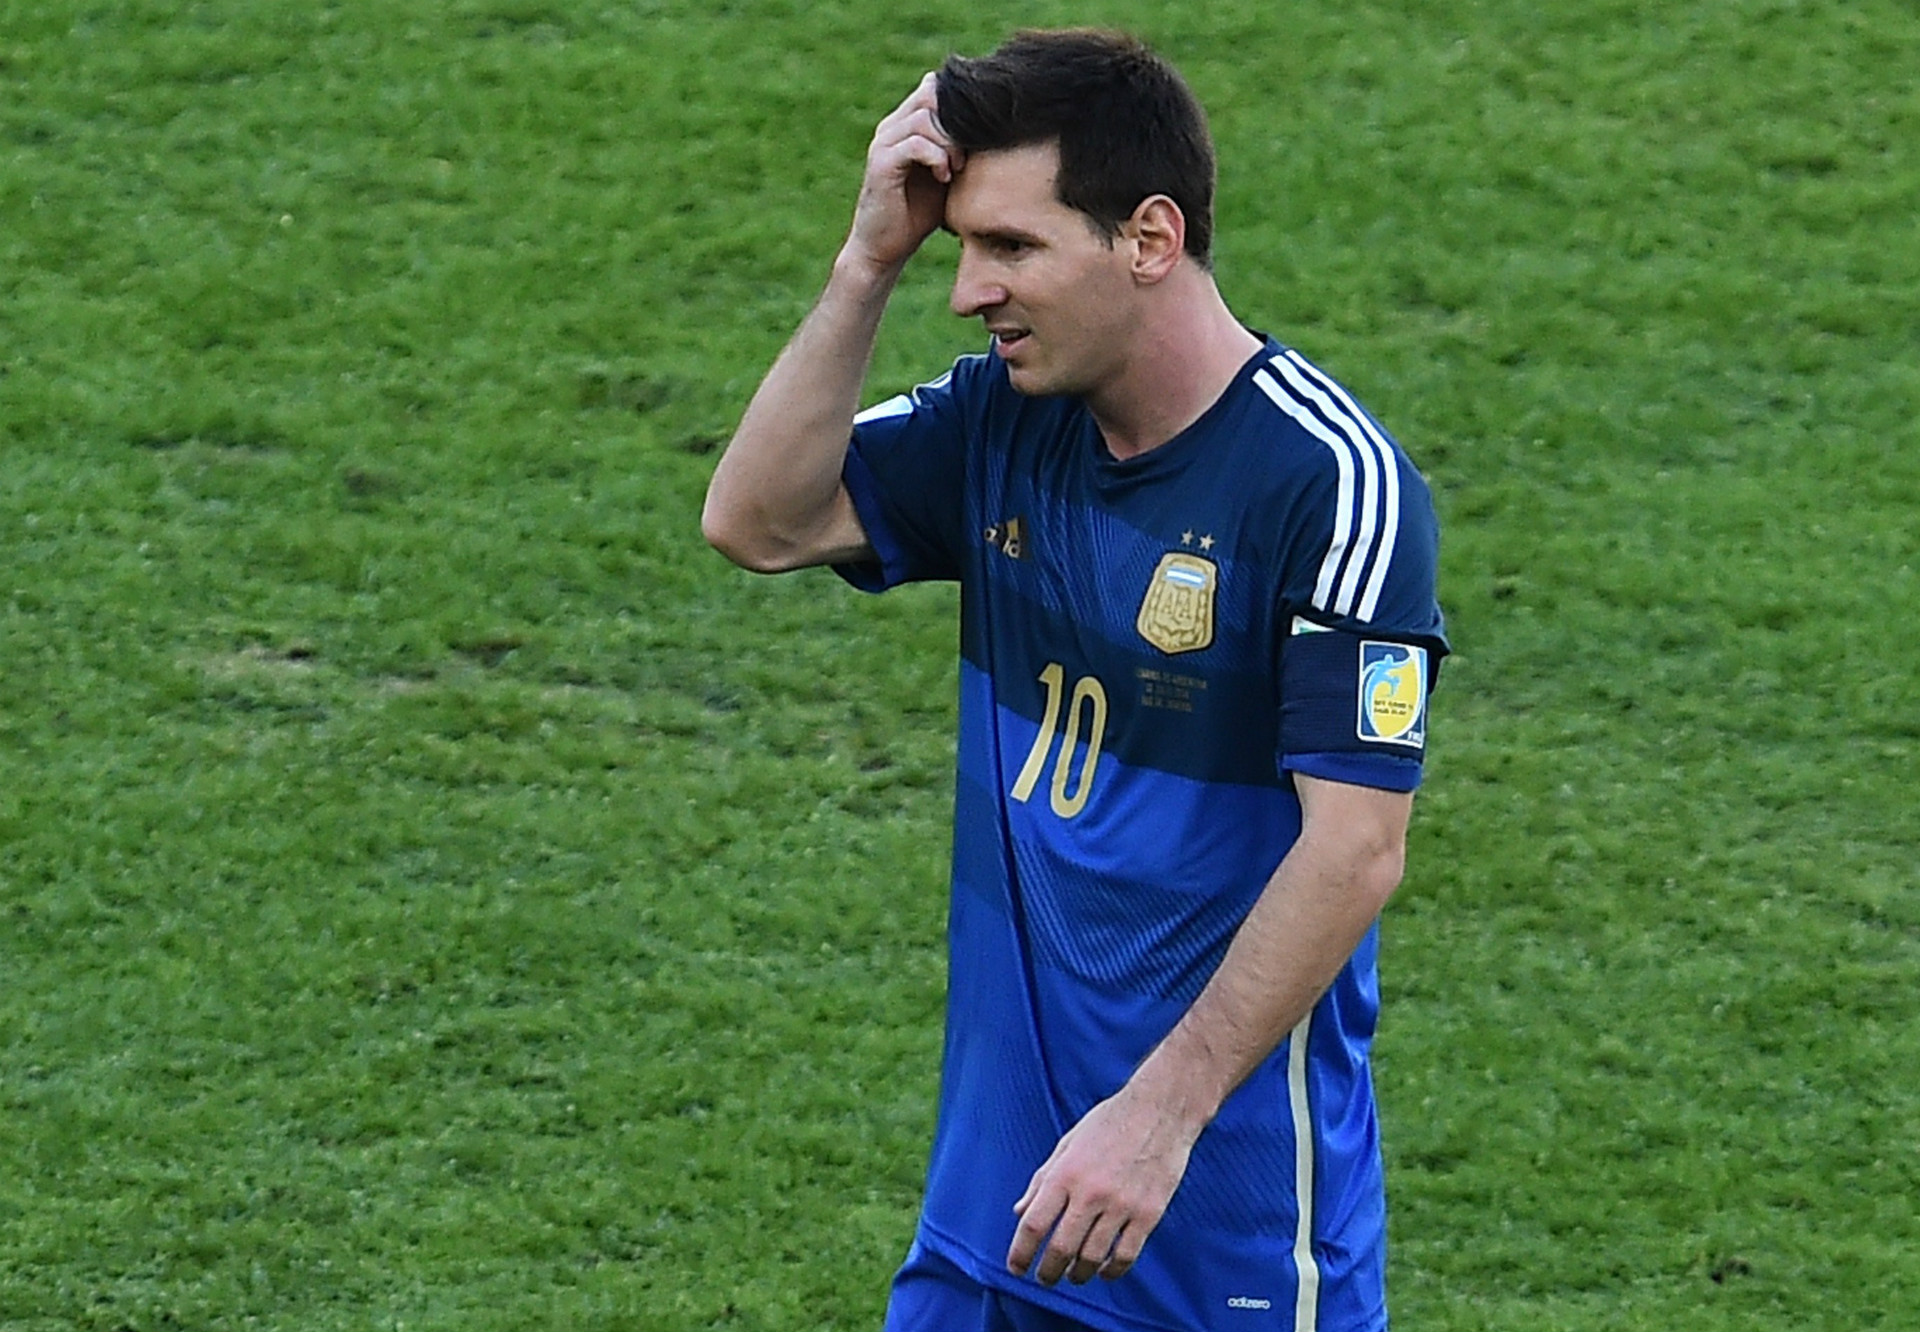 LIONEL MESSI ARGENTINA 2014 WORLD CUP FINAL 07132014